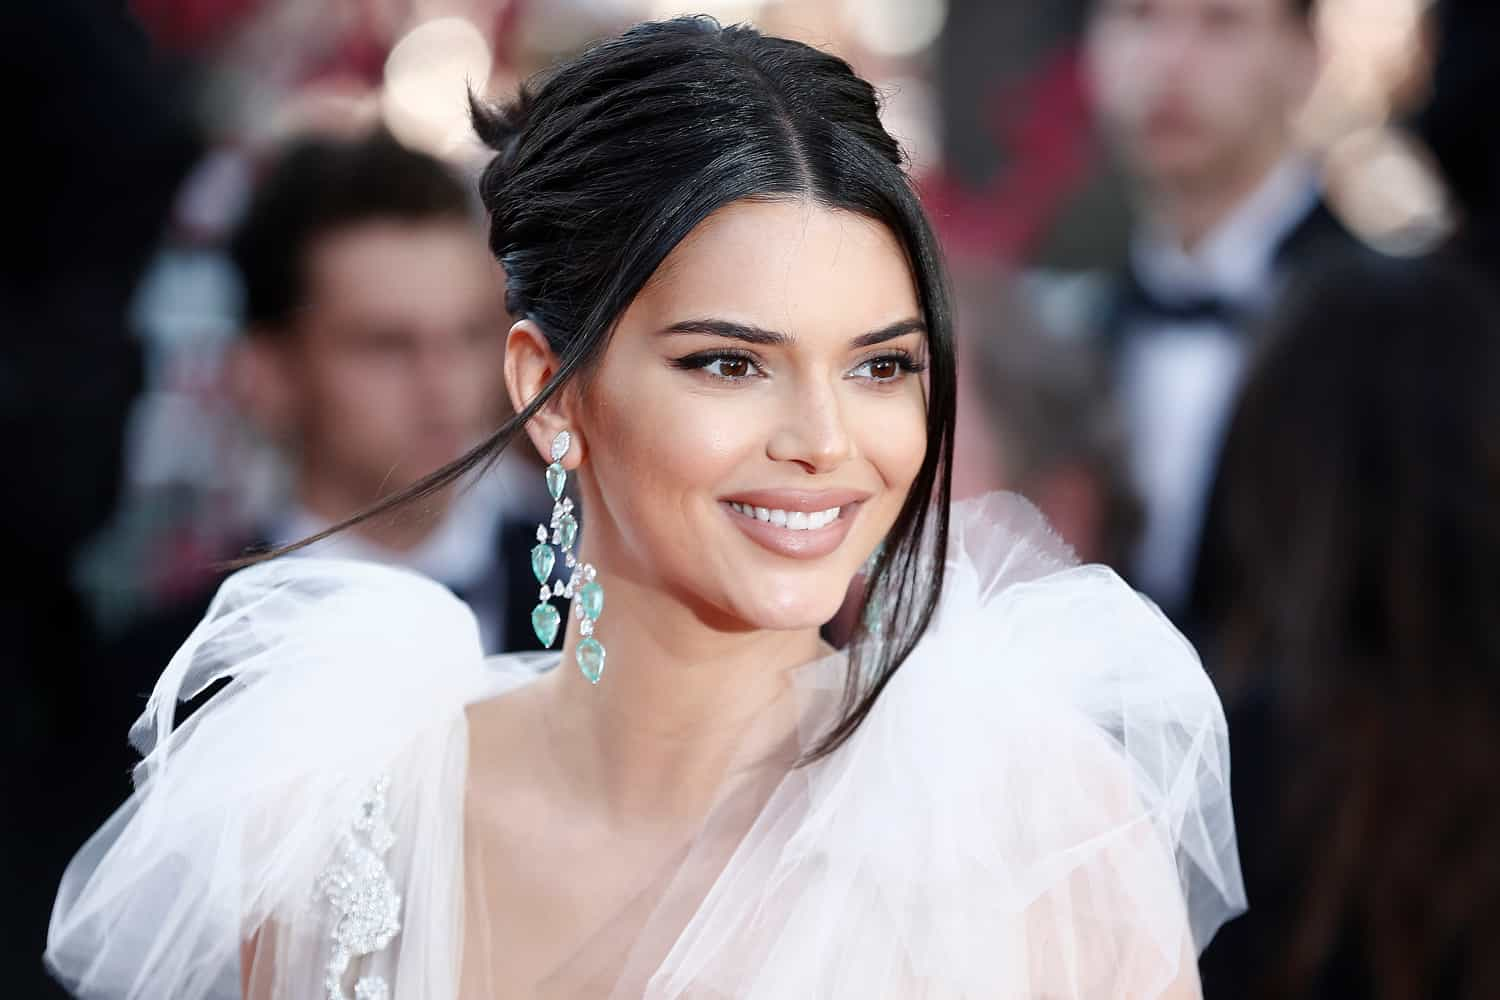 Kendall Jenner Claps Back After Alleged Stalker Incident!